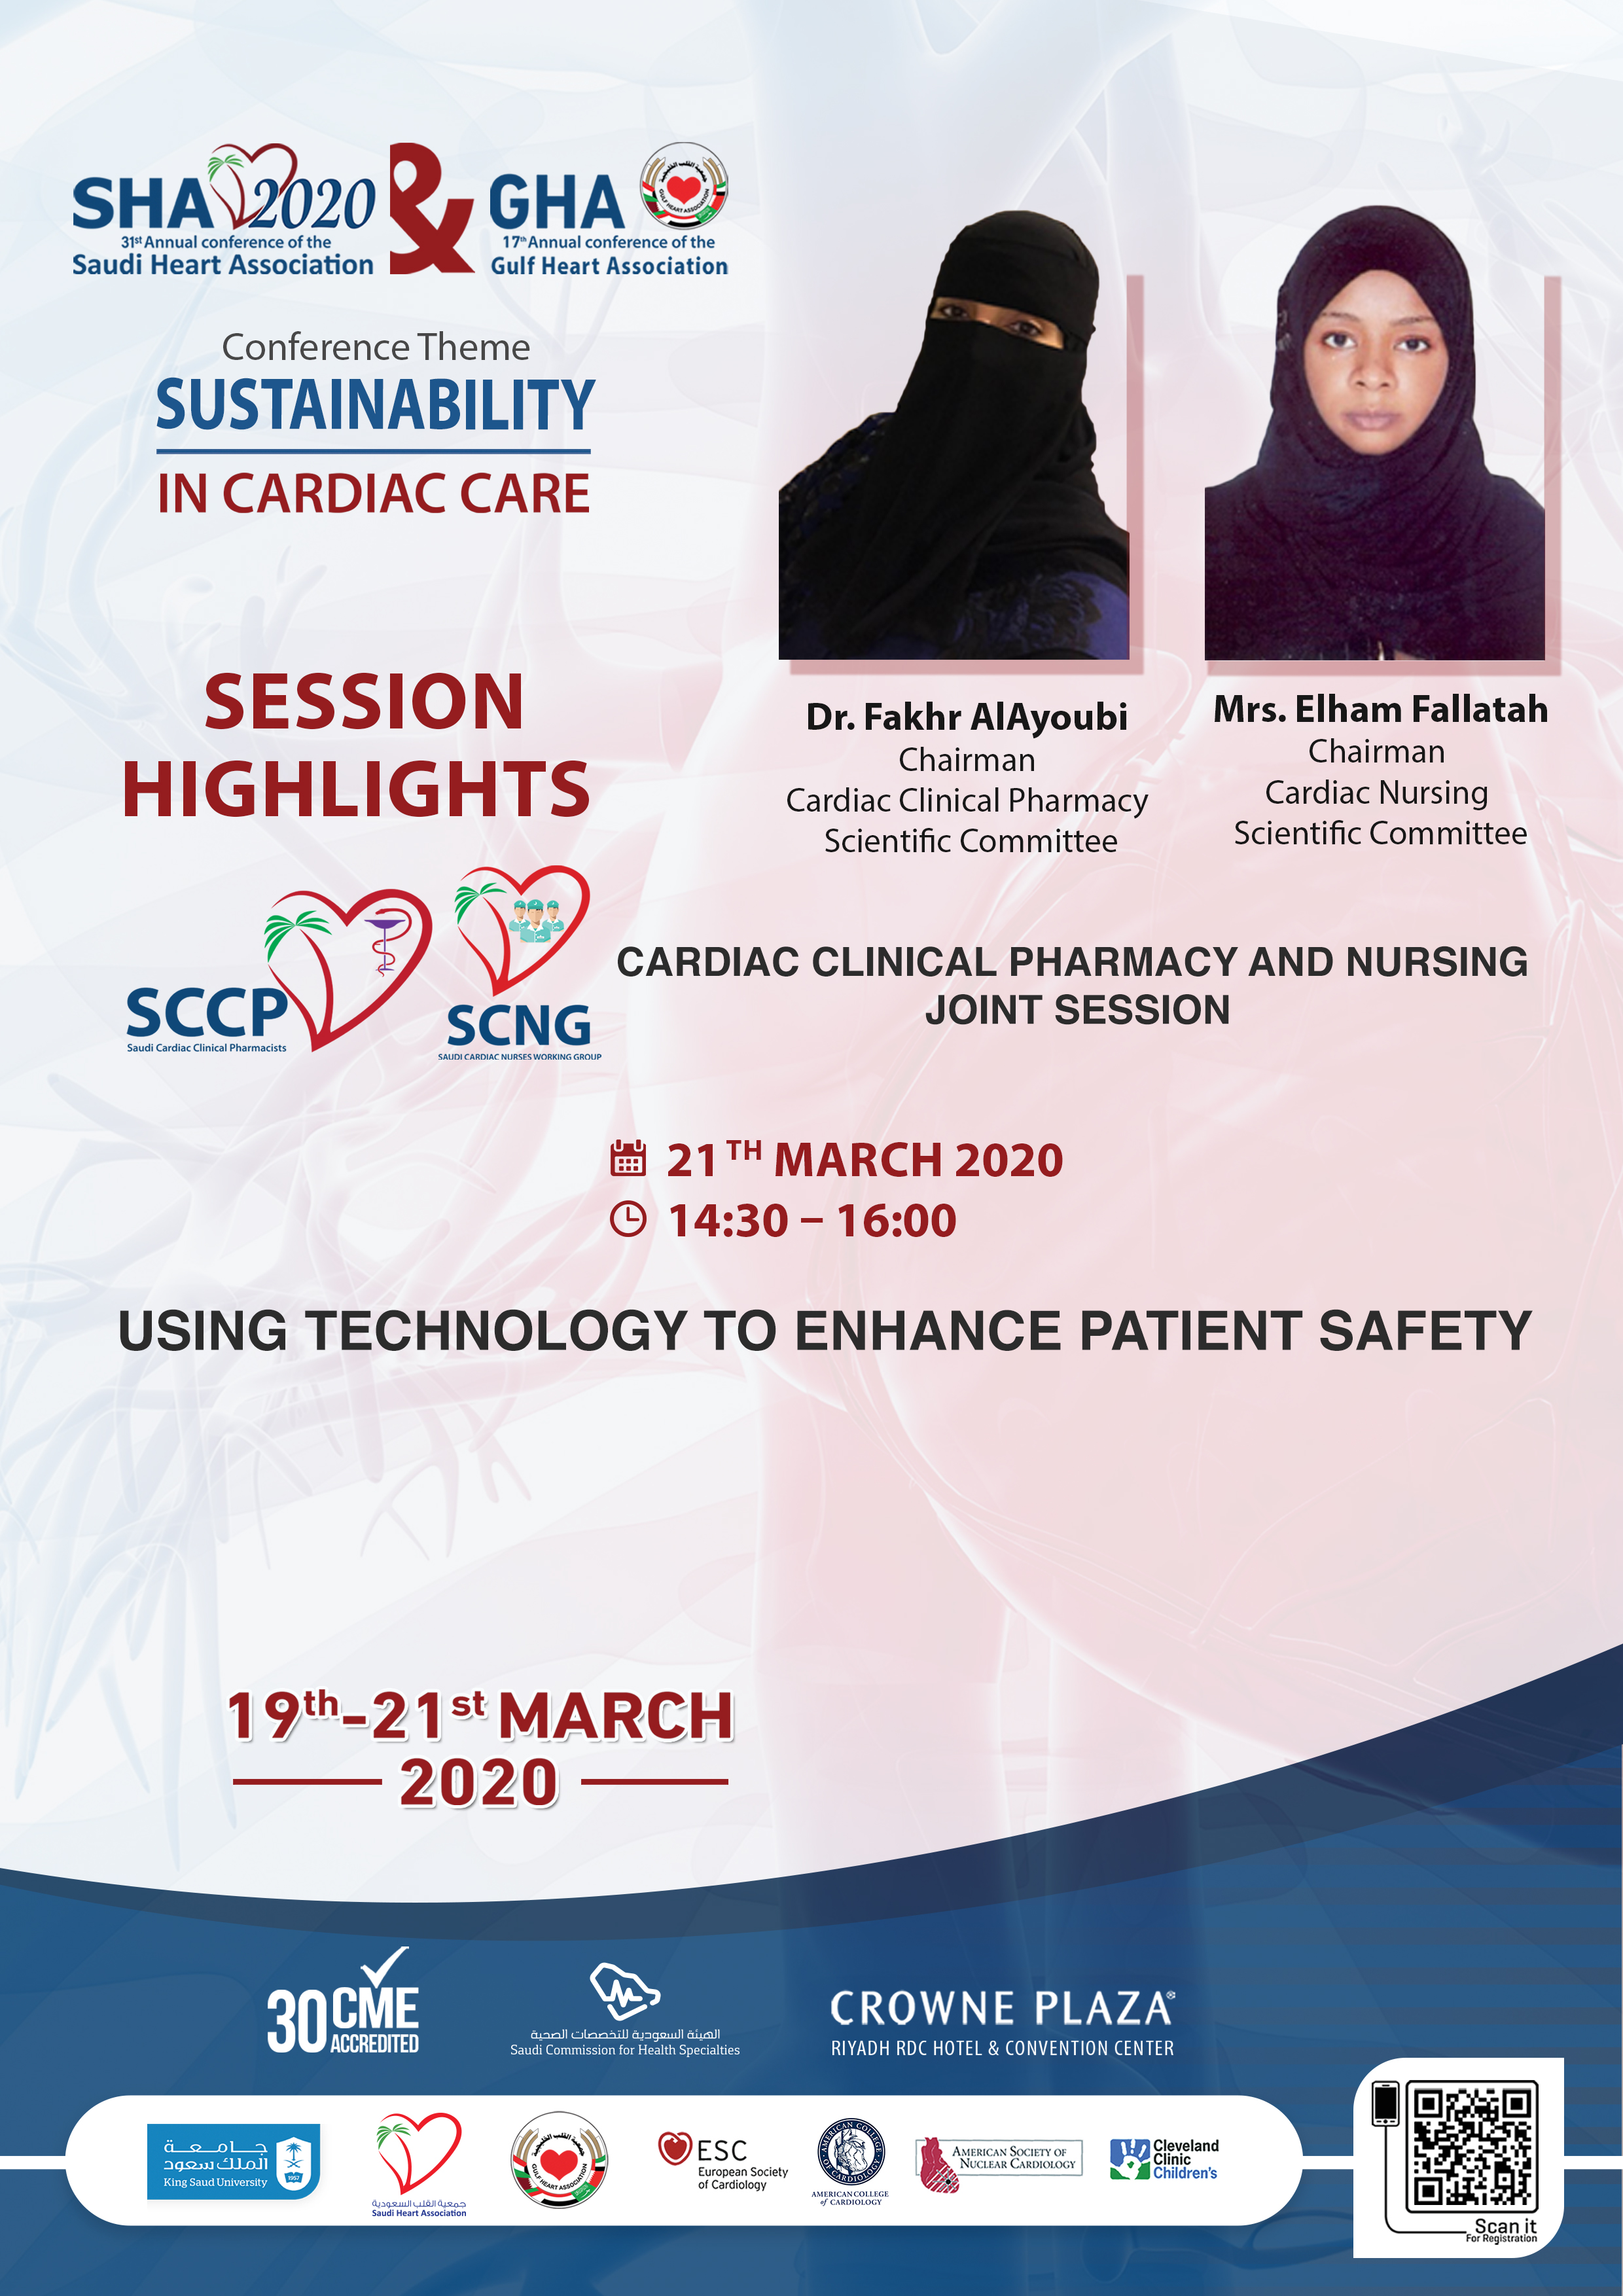 Cardiac Clinical Pharmacy and Nursing Joint Session